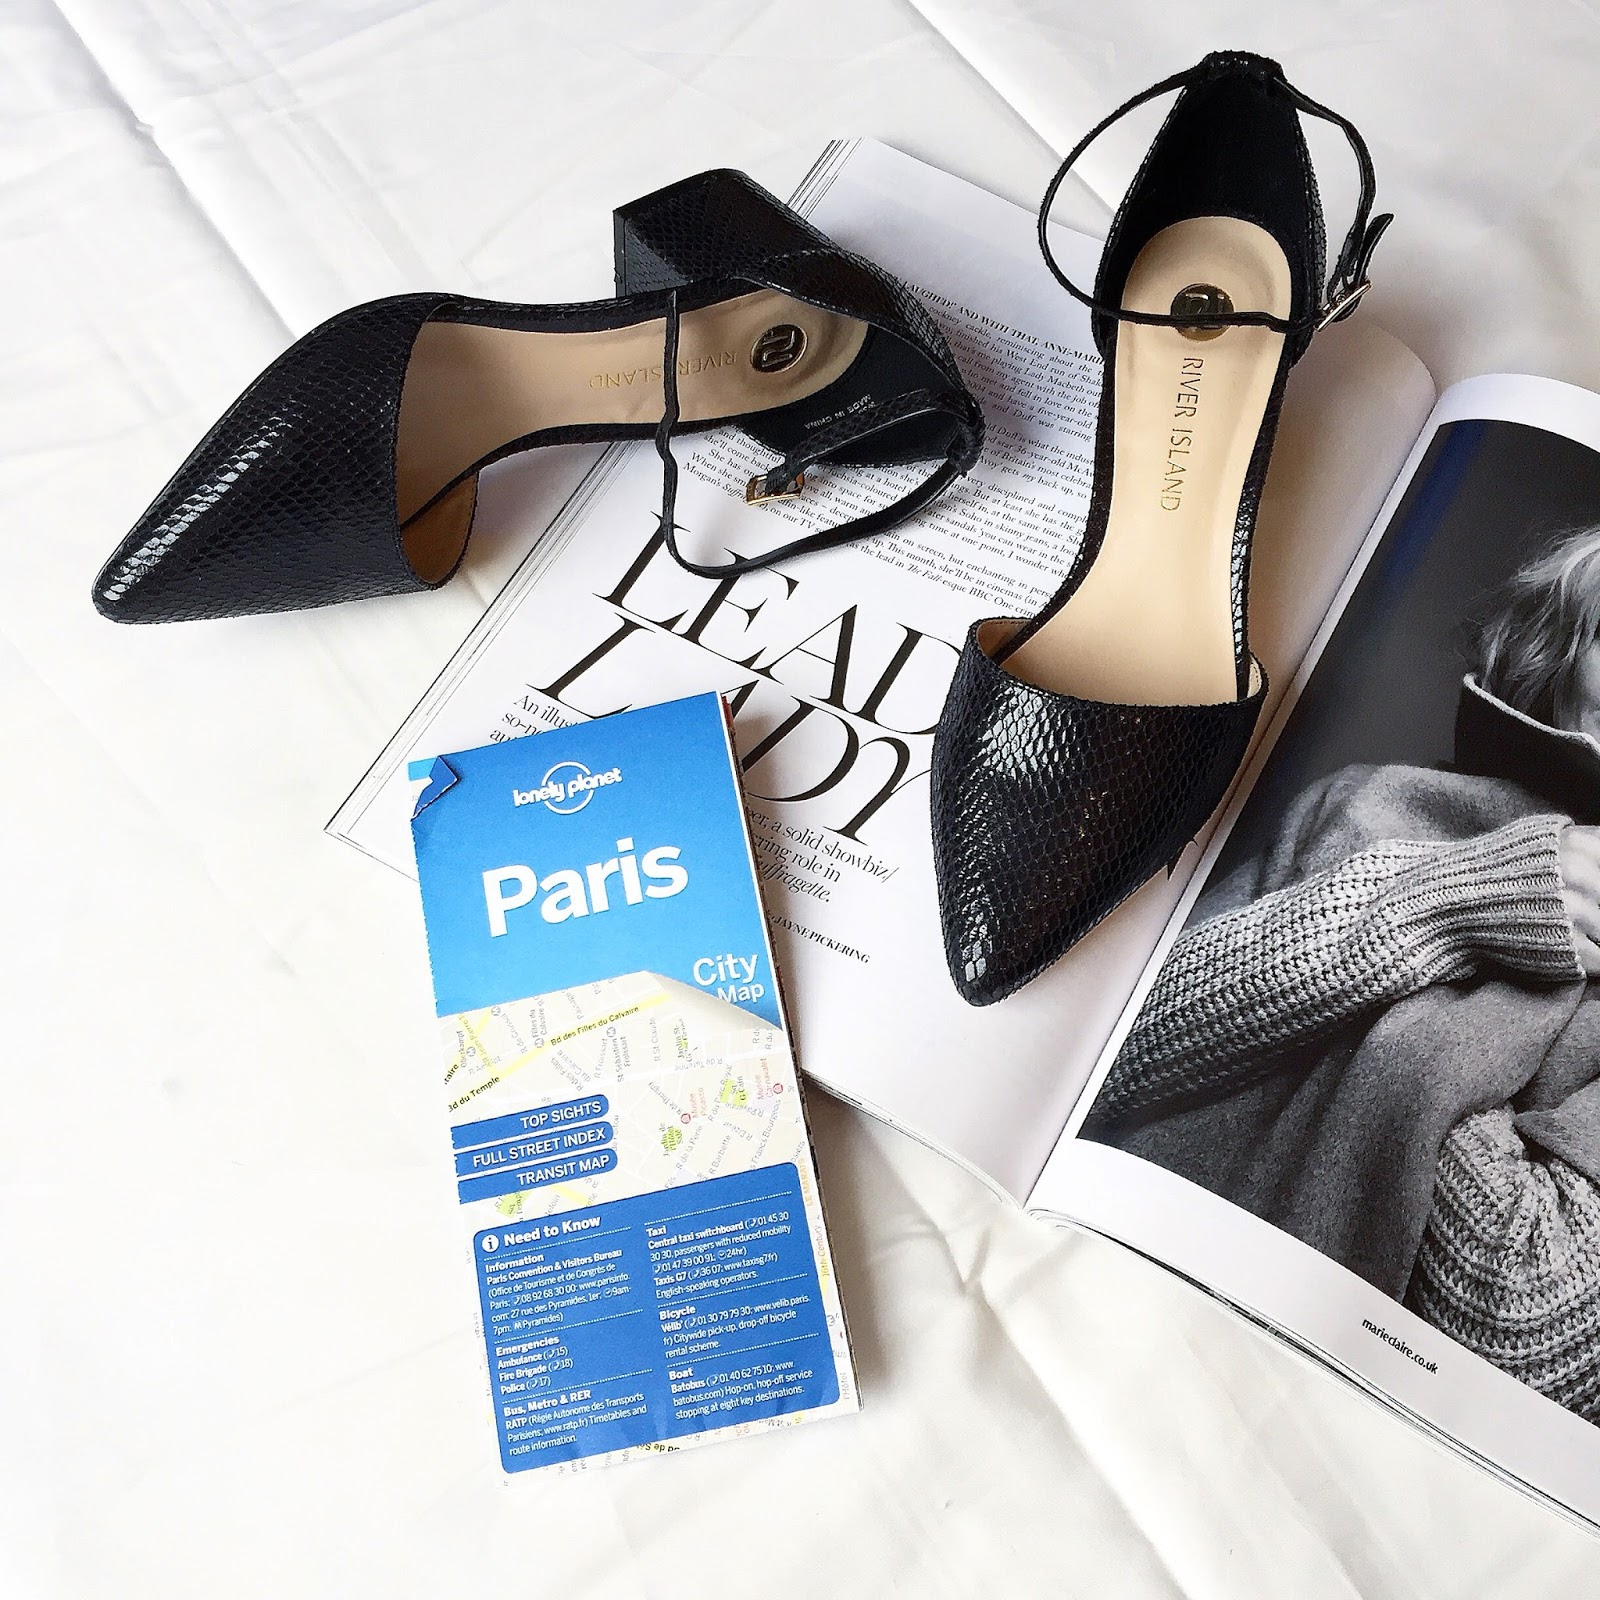 river island chunky party shoes, how to photograph shoes for instagram